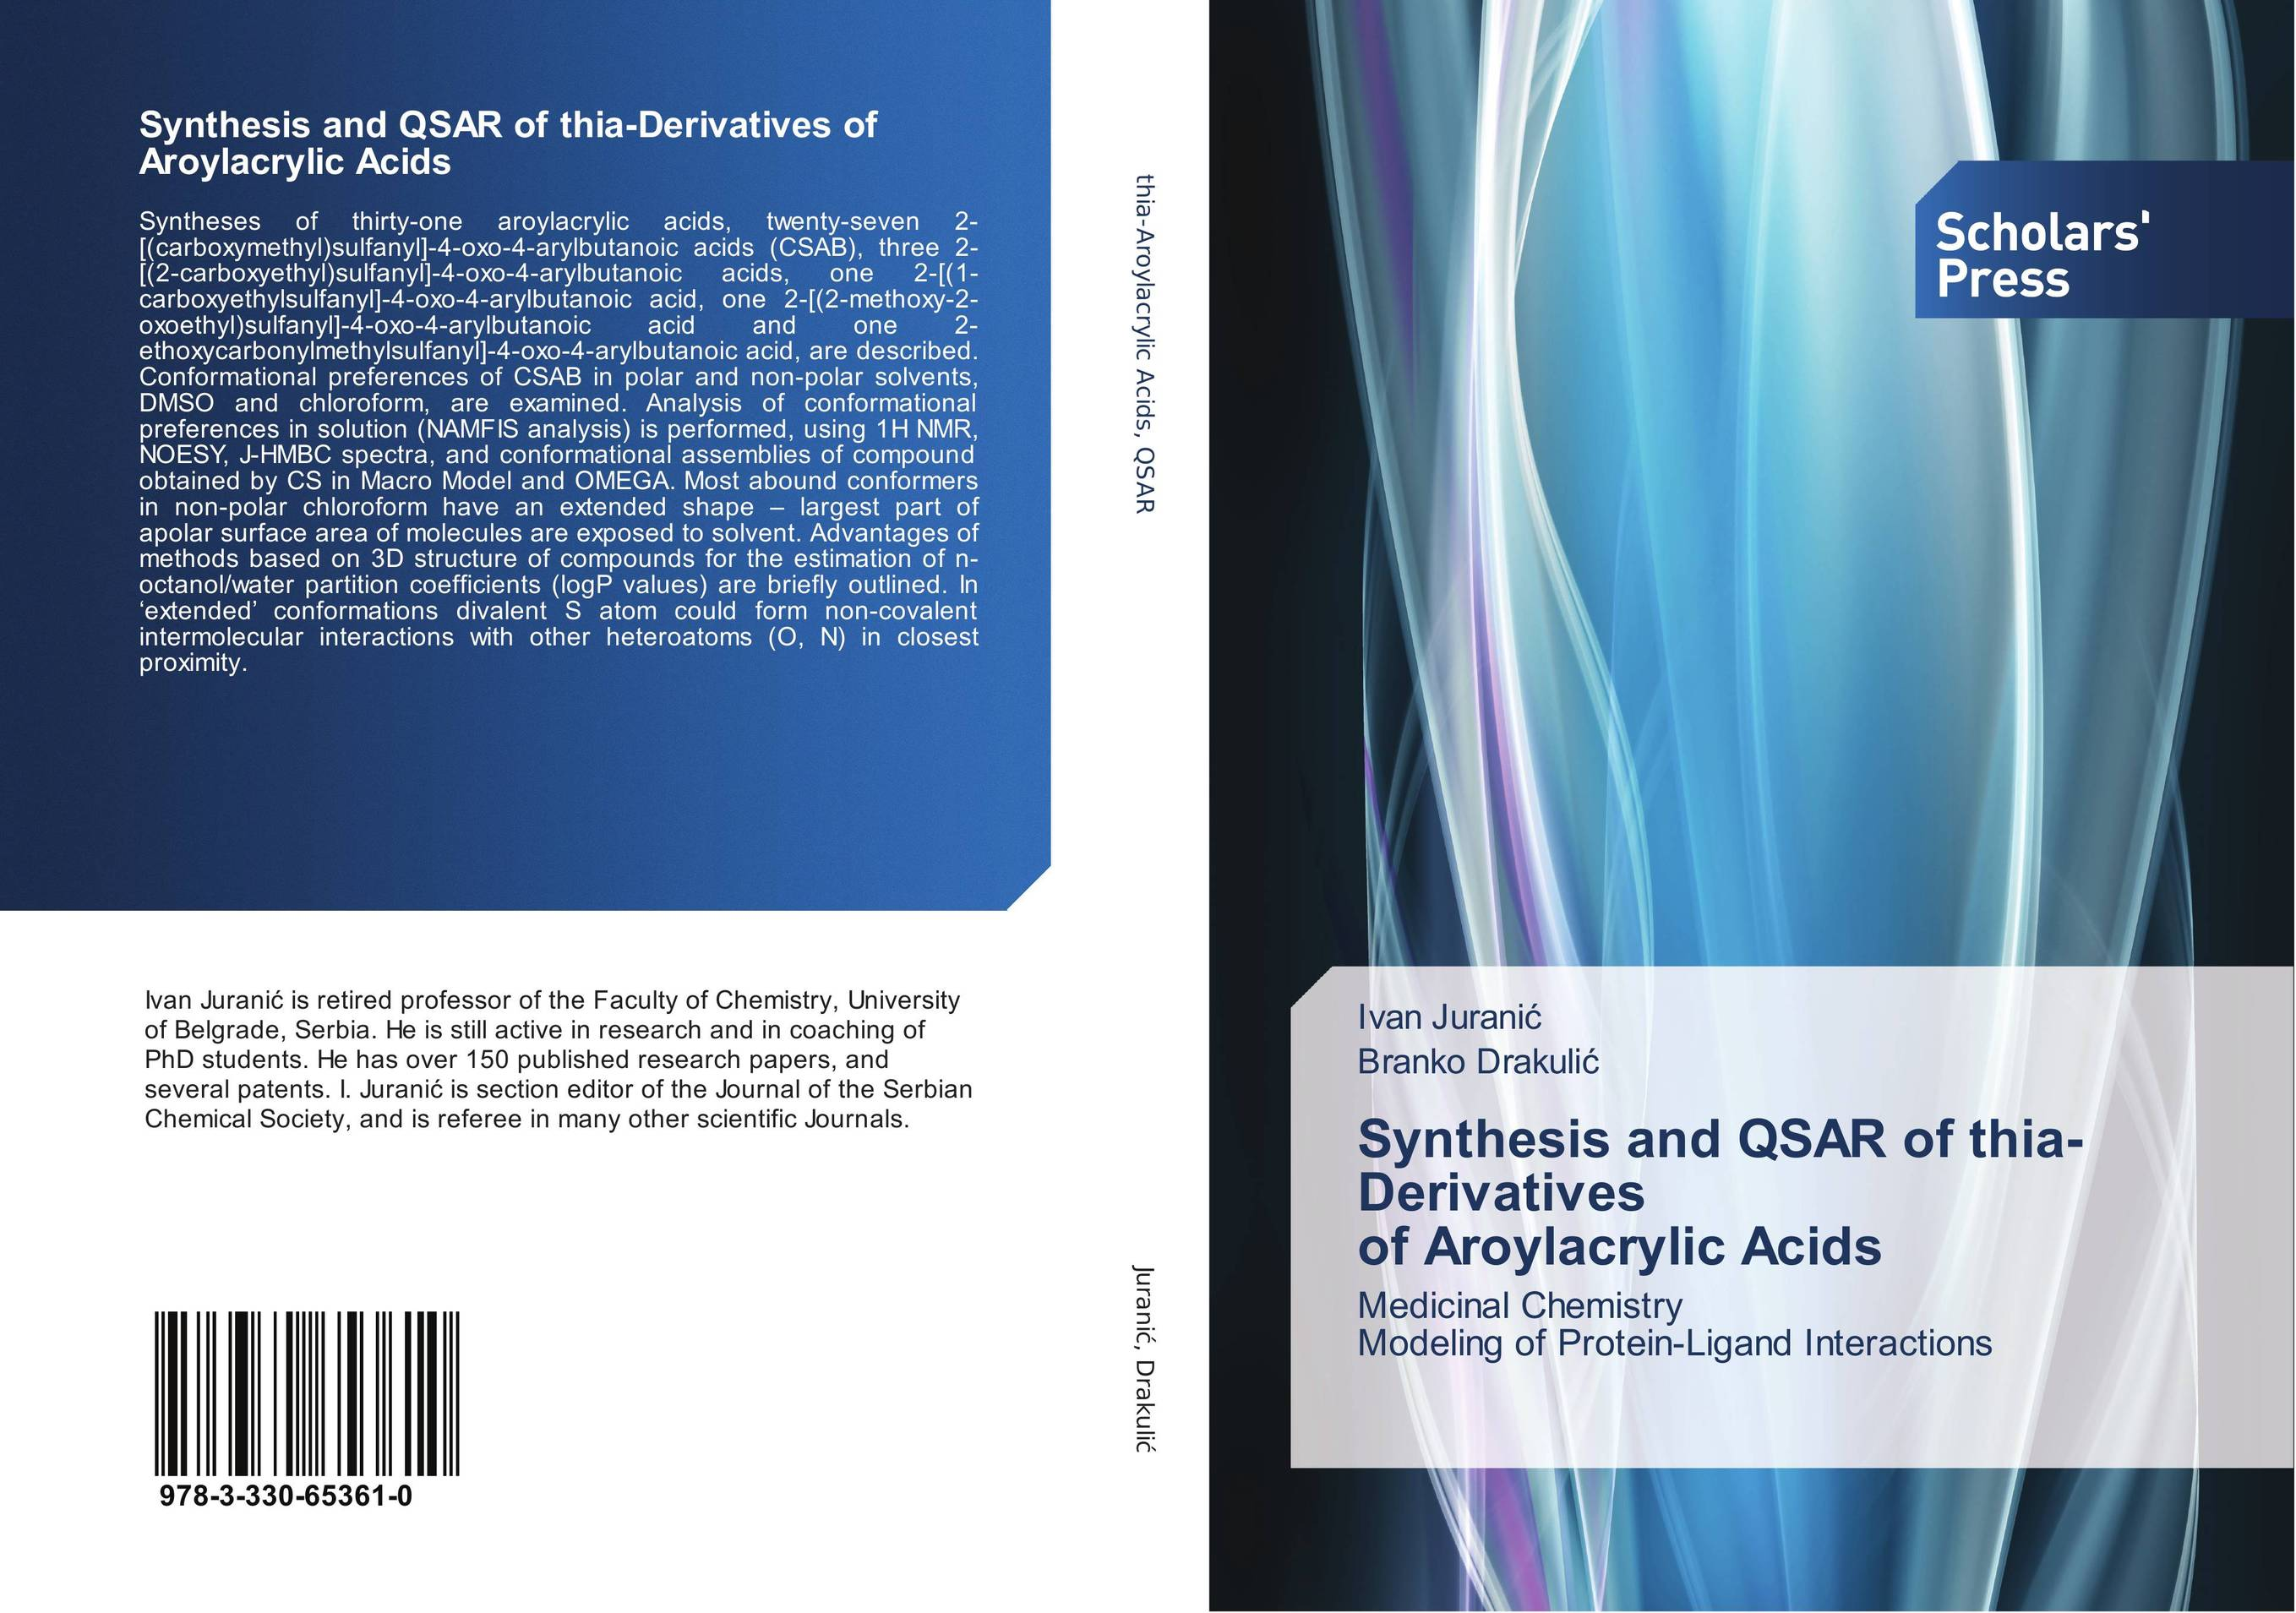 9783330653610 Synthesis and QSAR of thiaDerivatives of Aroylacrylic Acids Iva